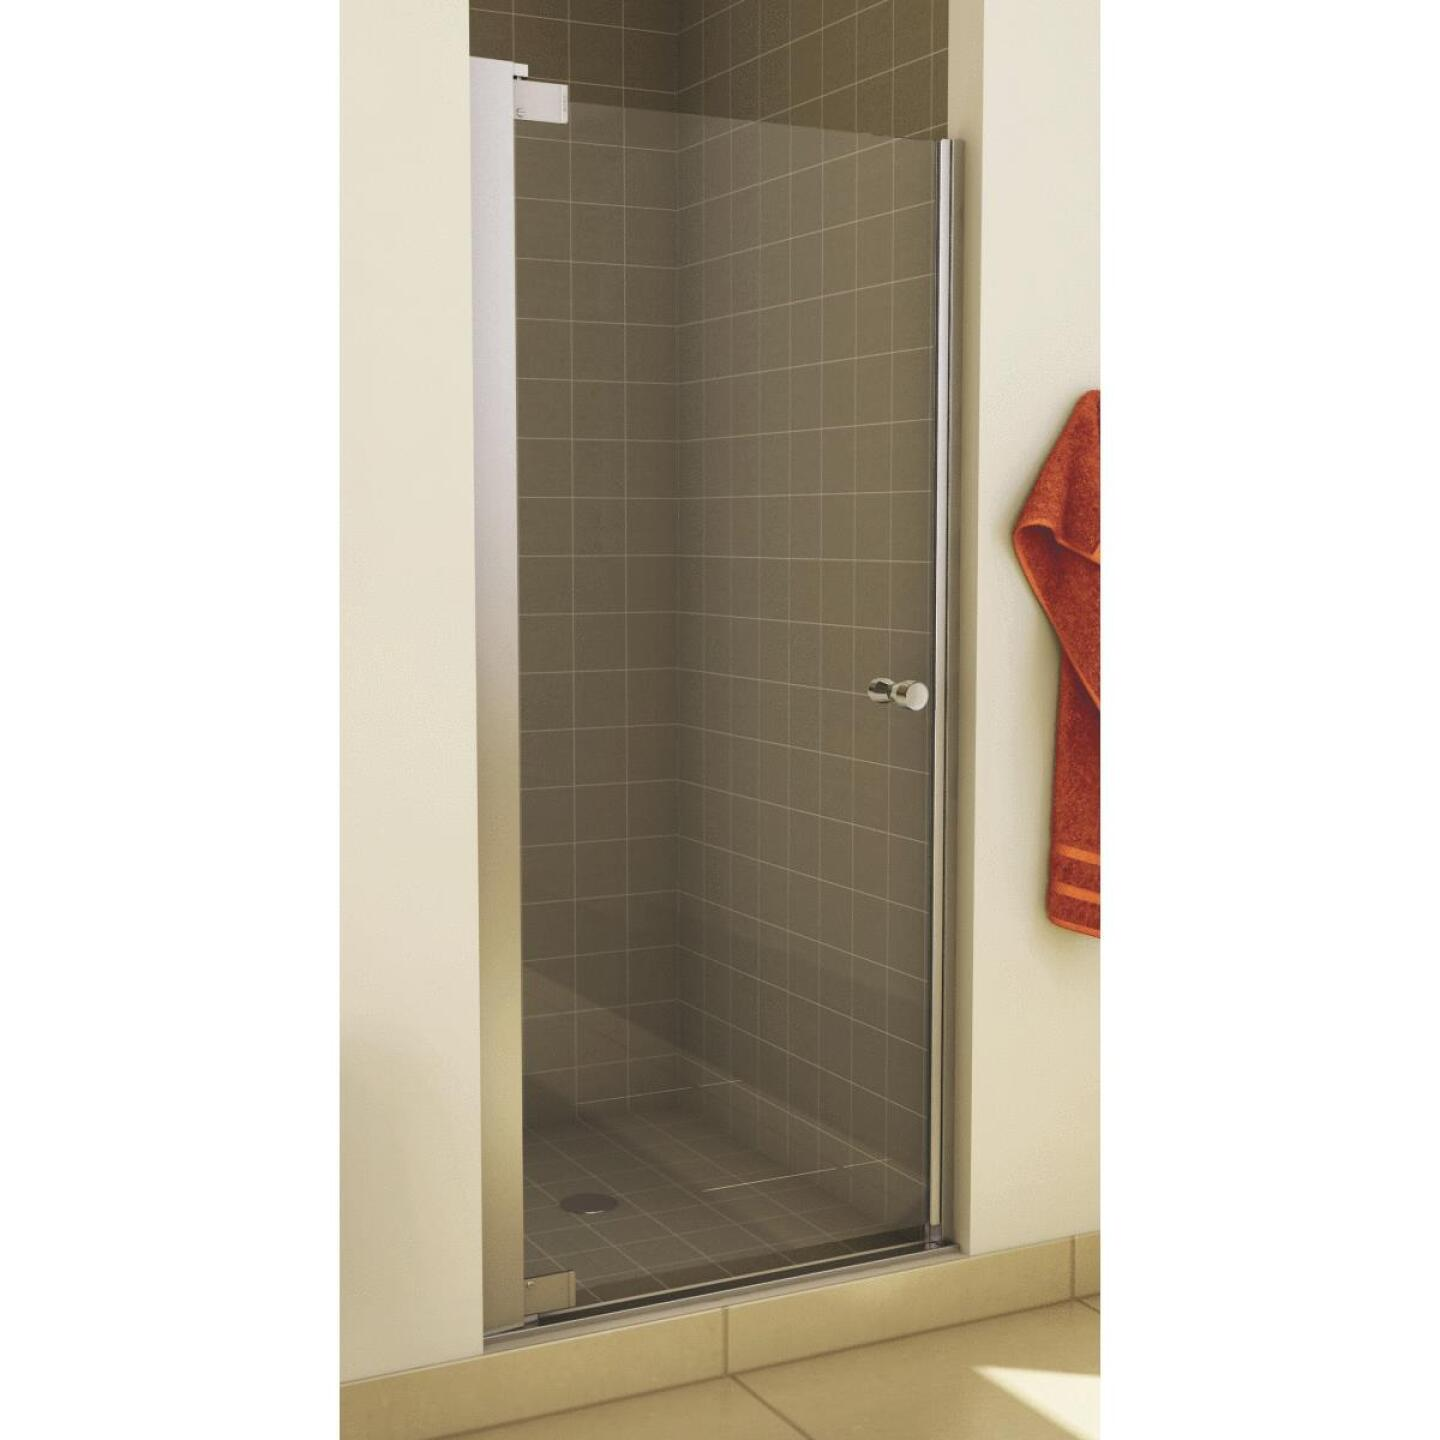 Maax Madono 36.5 In. W. X 67 In. H. Chrome Clear Glass Pivot Shower Door Image 1